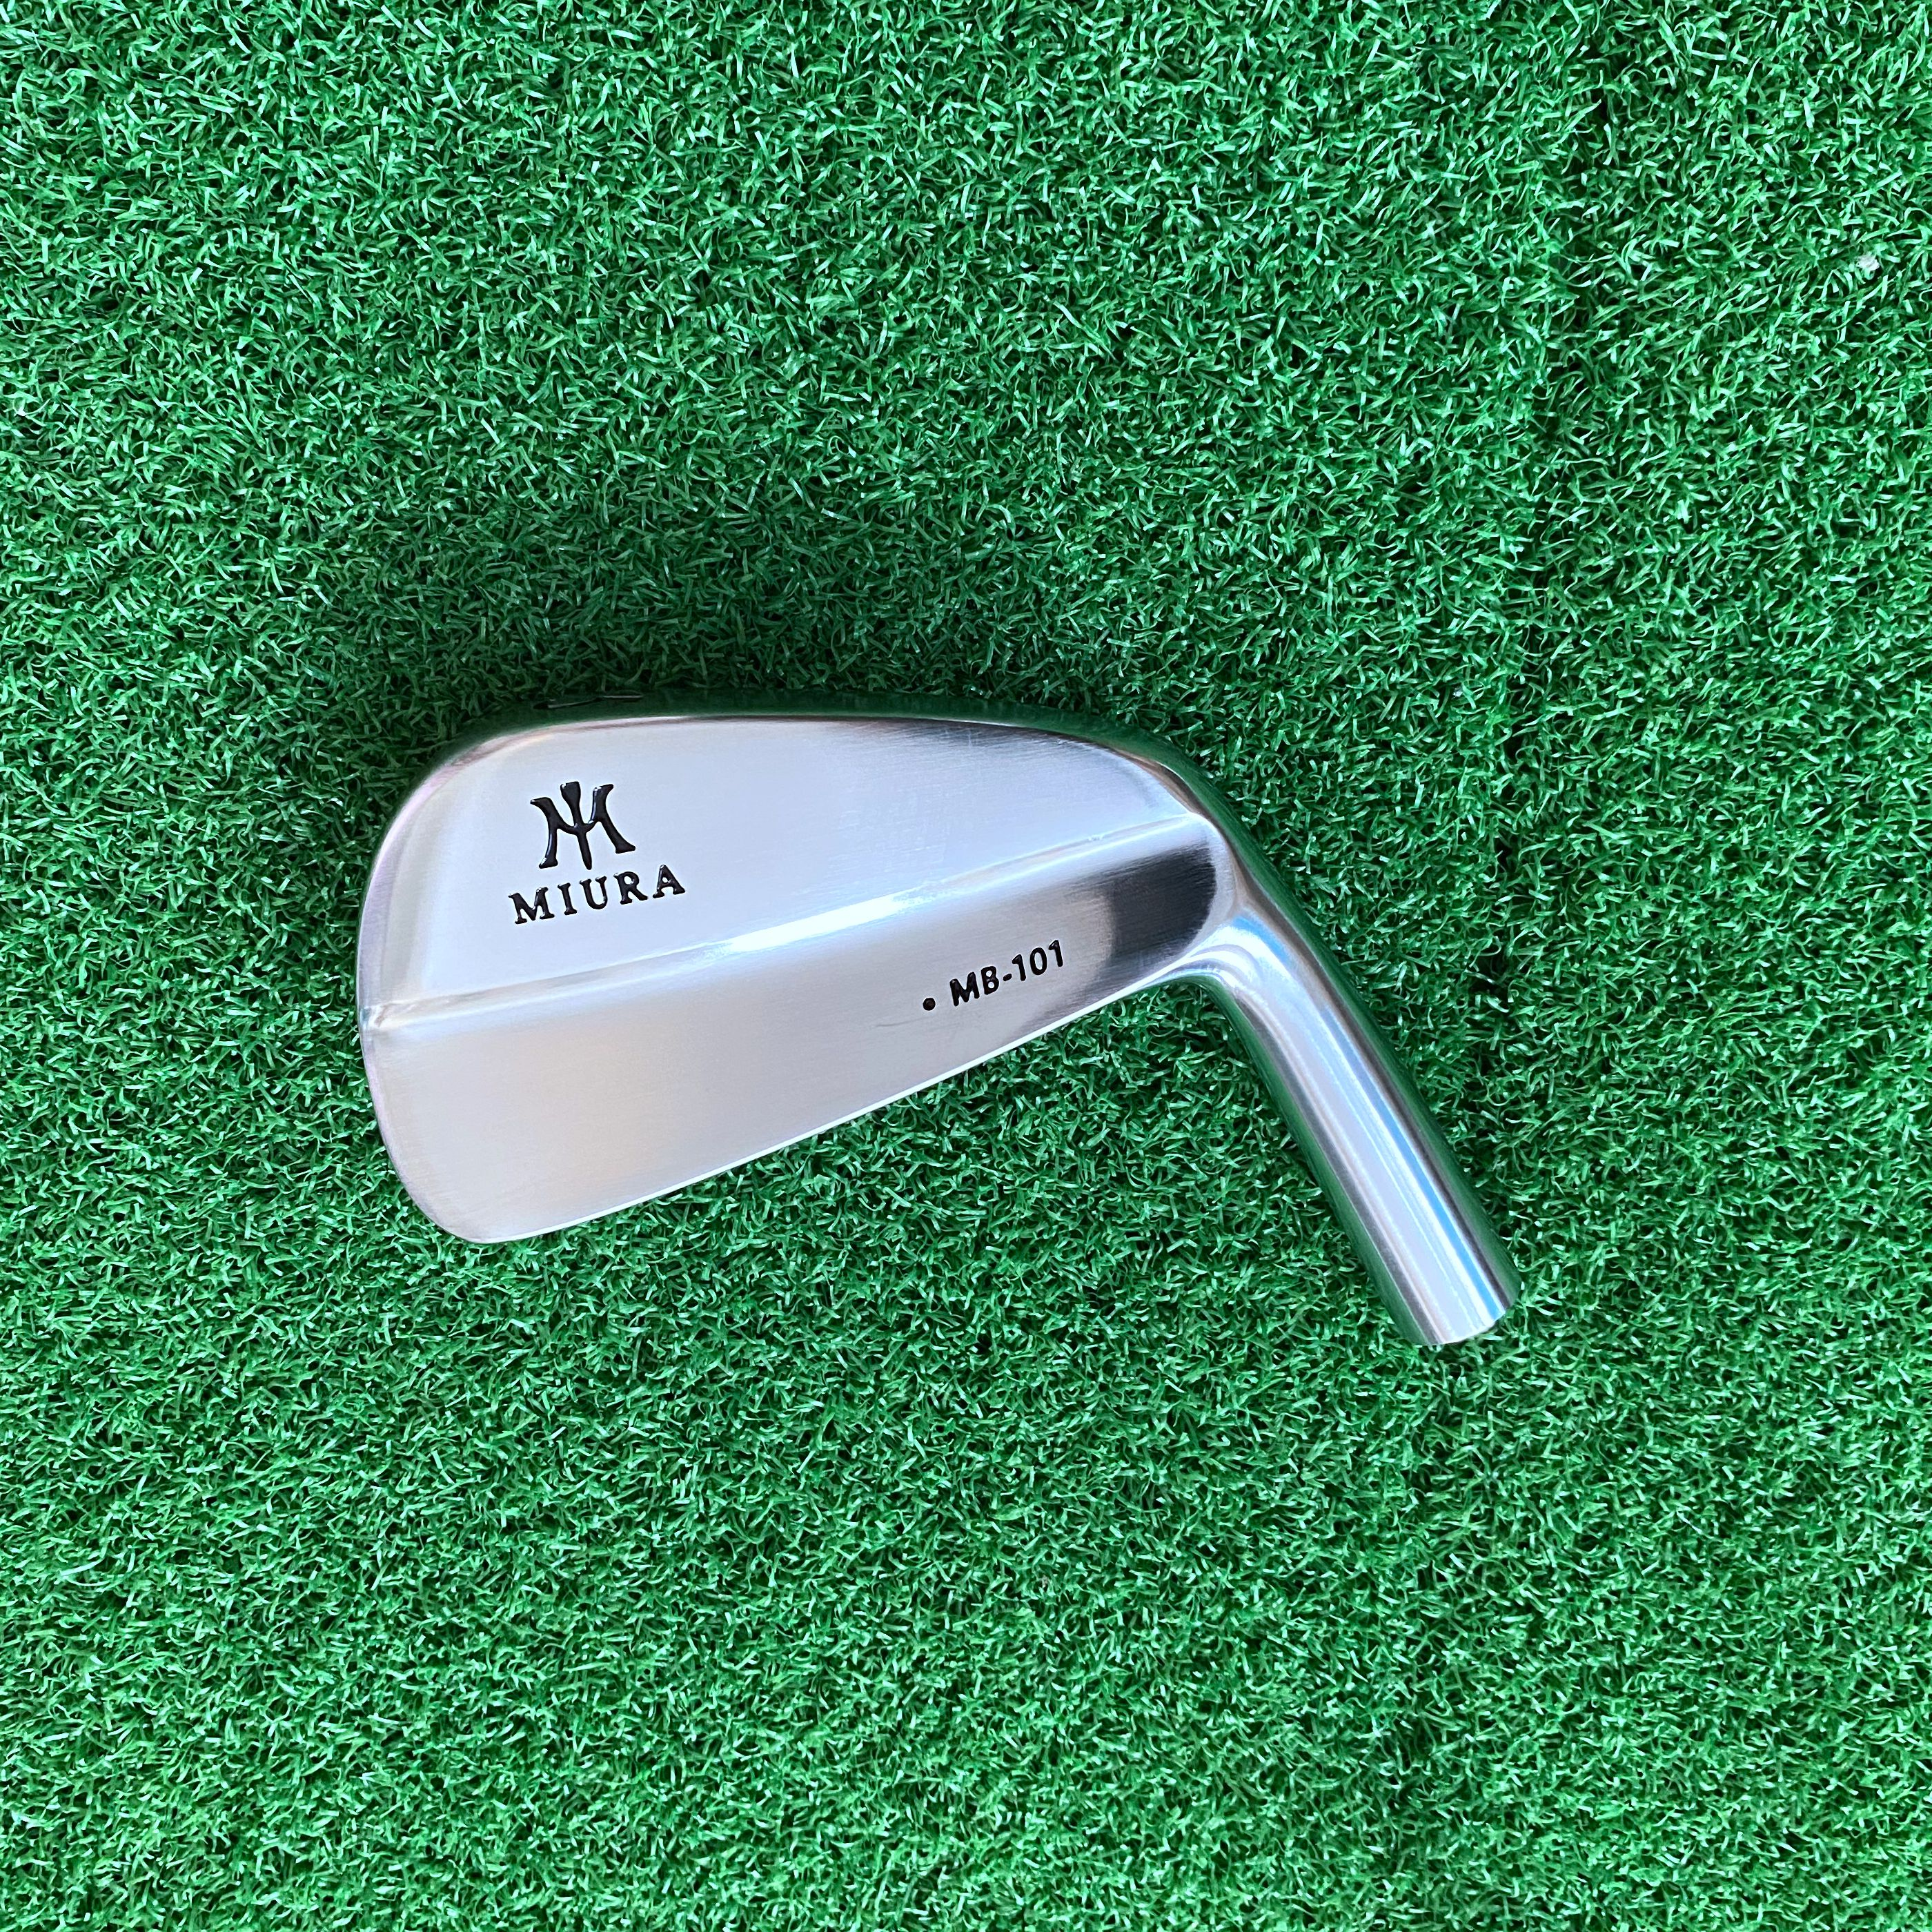 New Men Golf Clubs Irons Head 4-p 7Pcs Softe Iron No Shaft Free Shipping Miura Only